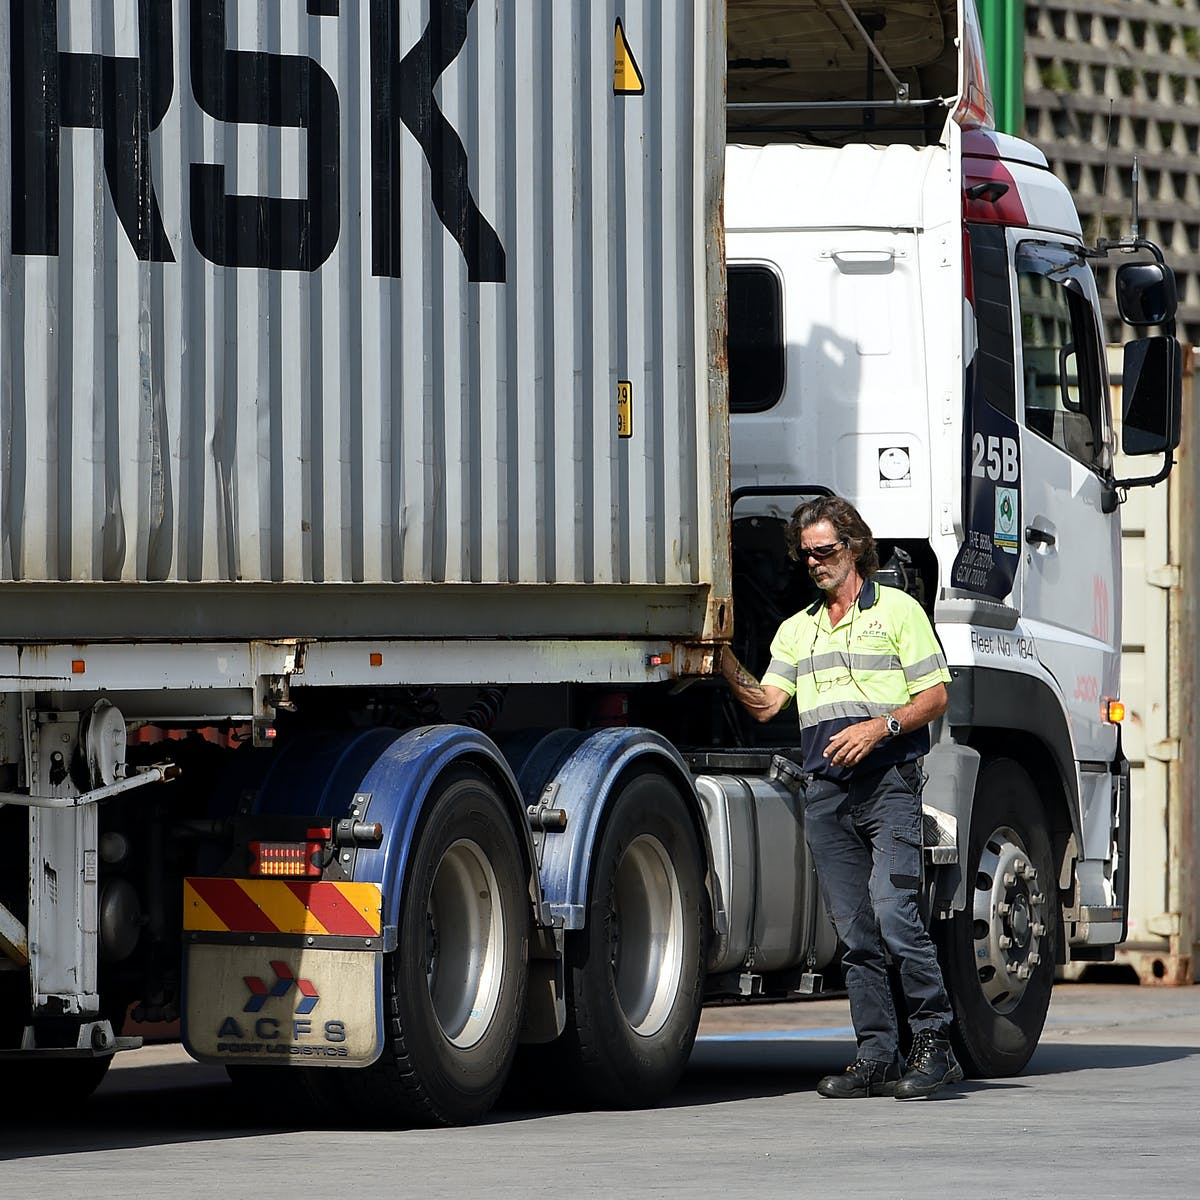 Truck drivers still aren't paid for all the work they do